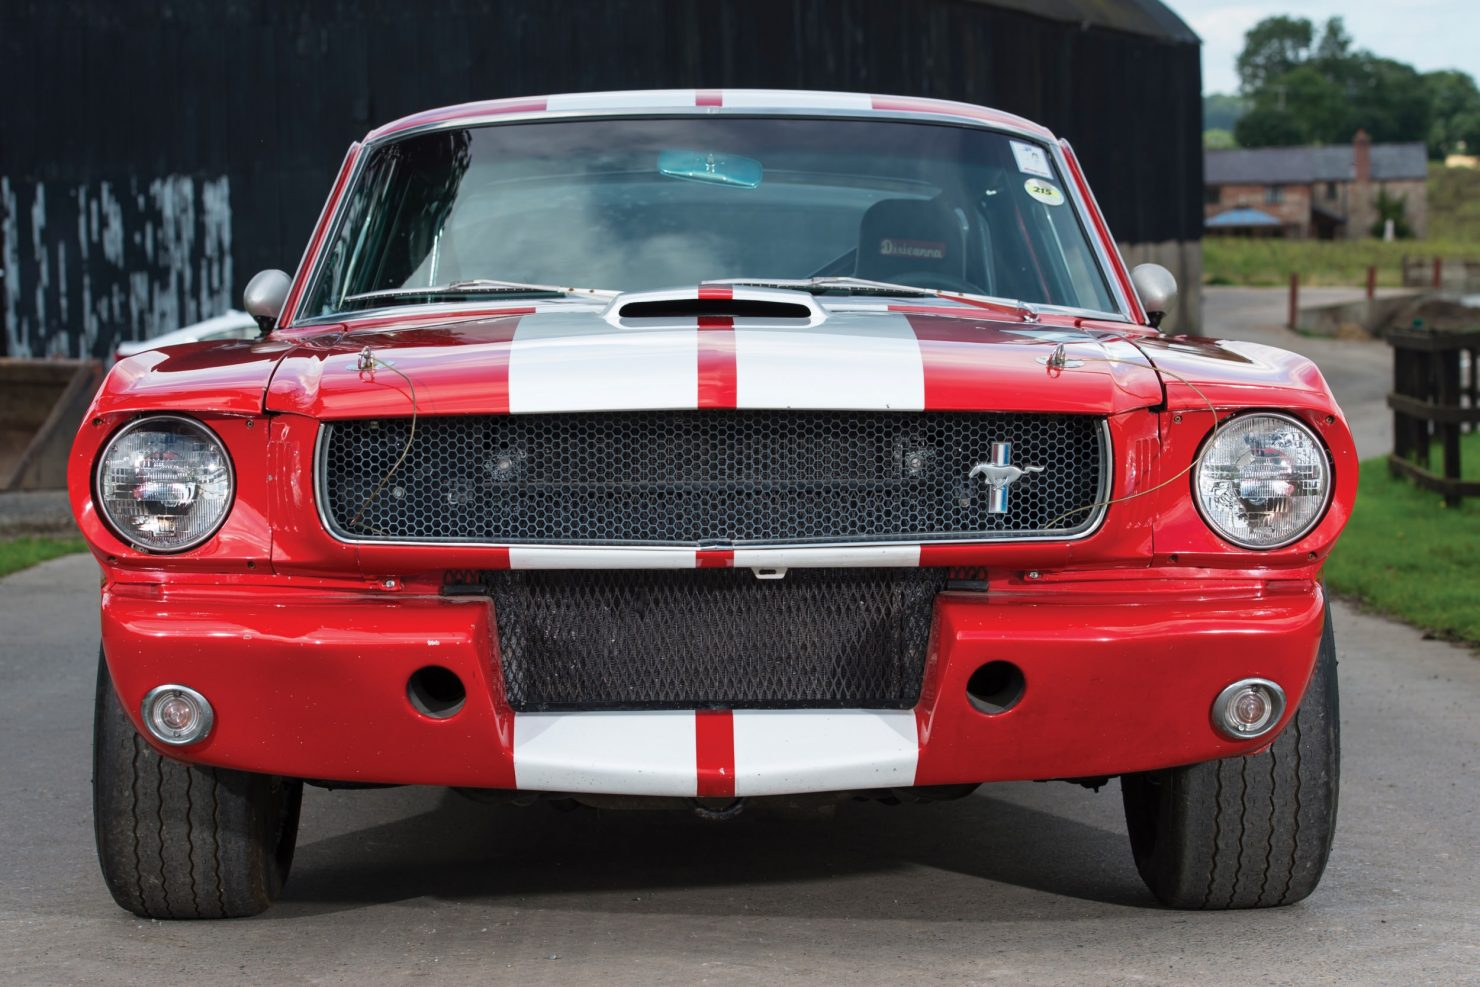 shelby gt350 race car 9 1480x987 - 1966 Shelby GT350 - Period SCCA Race Car